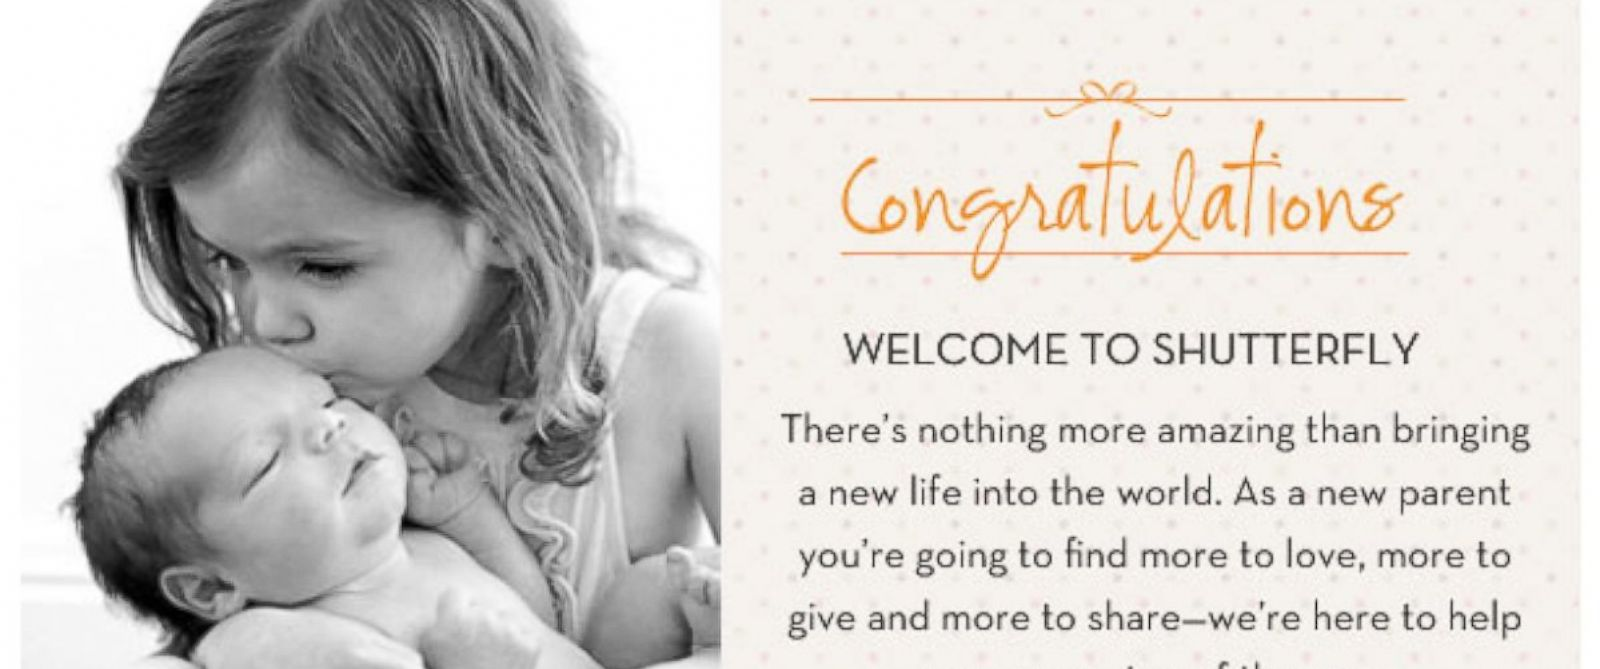 PHOTO: Shutterfly emailed this congratulations to an untold number of people, May 14, 2014.